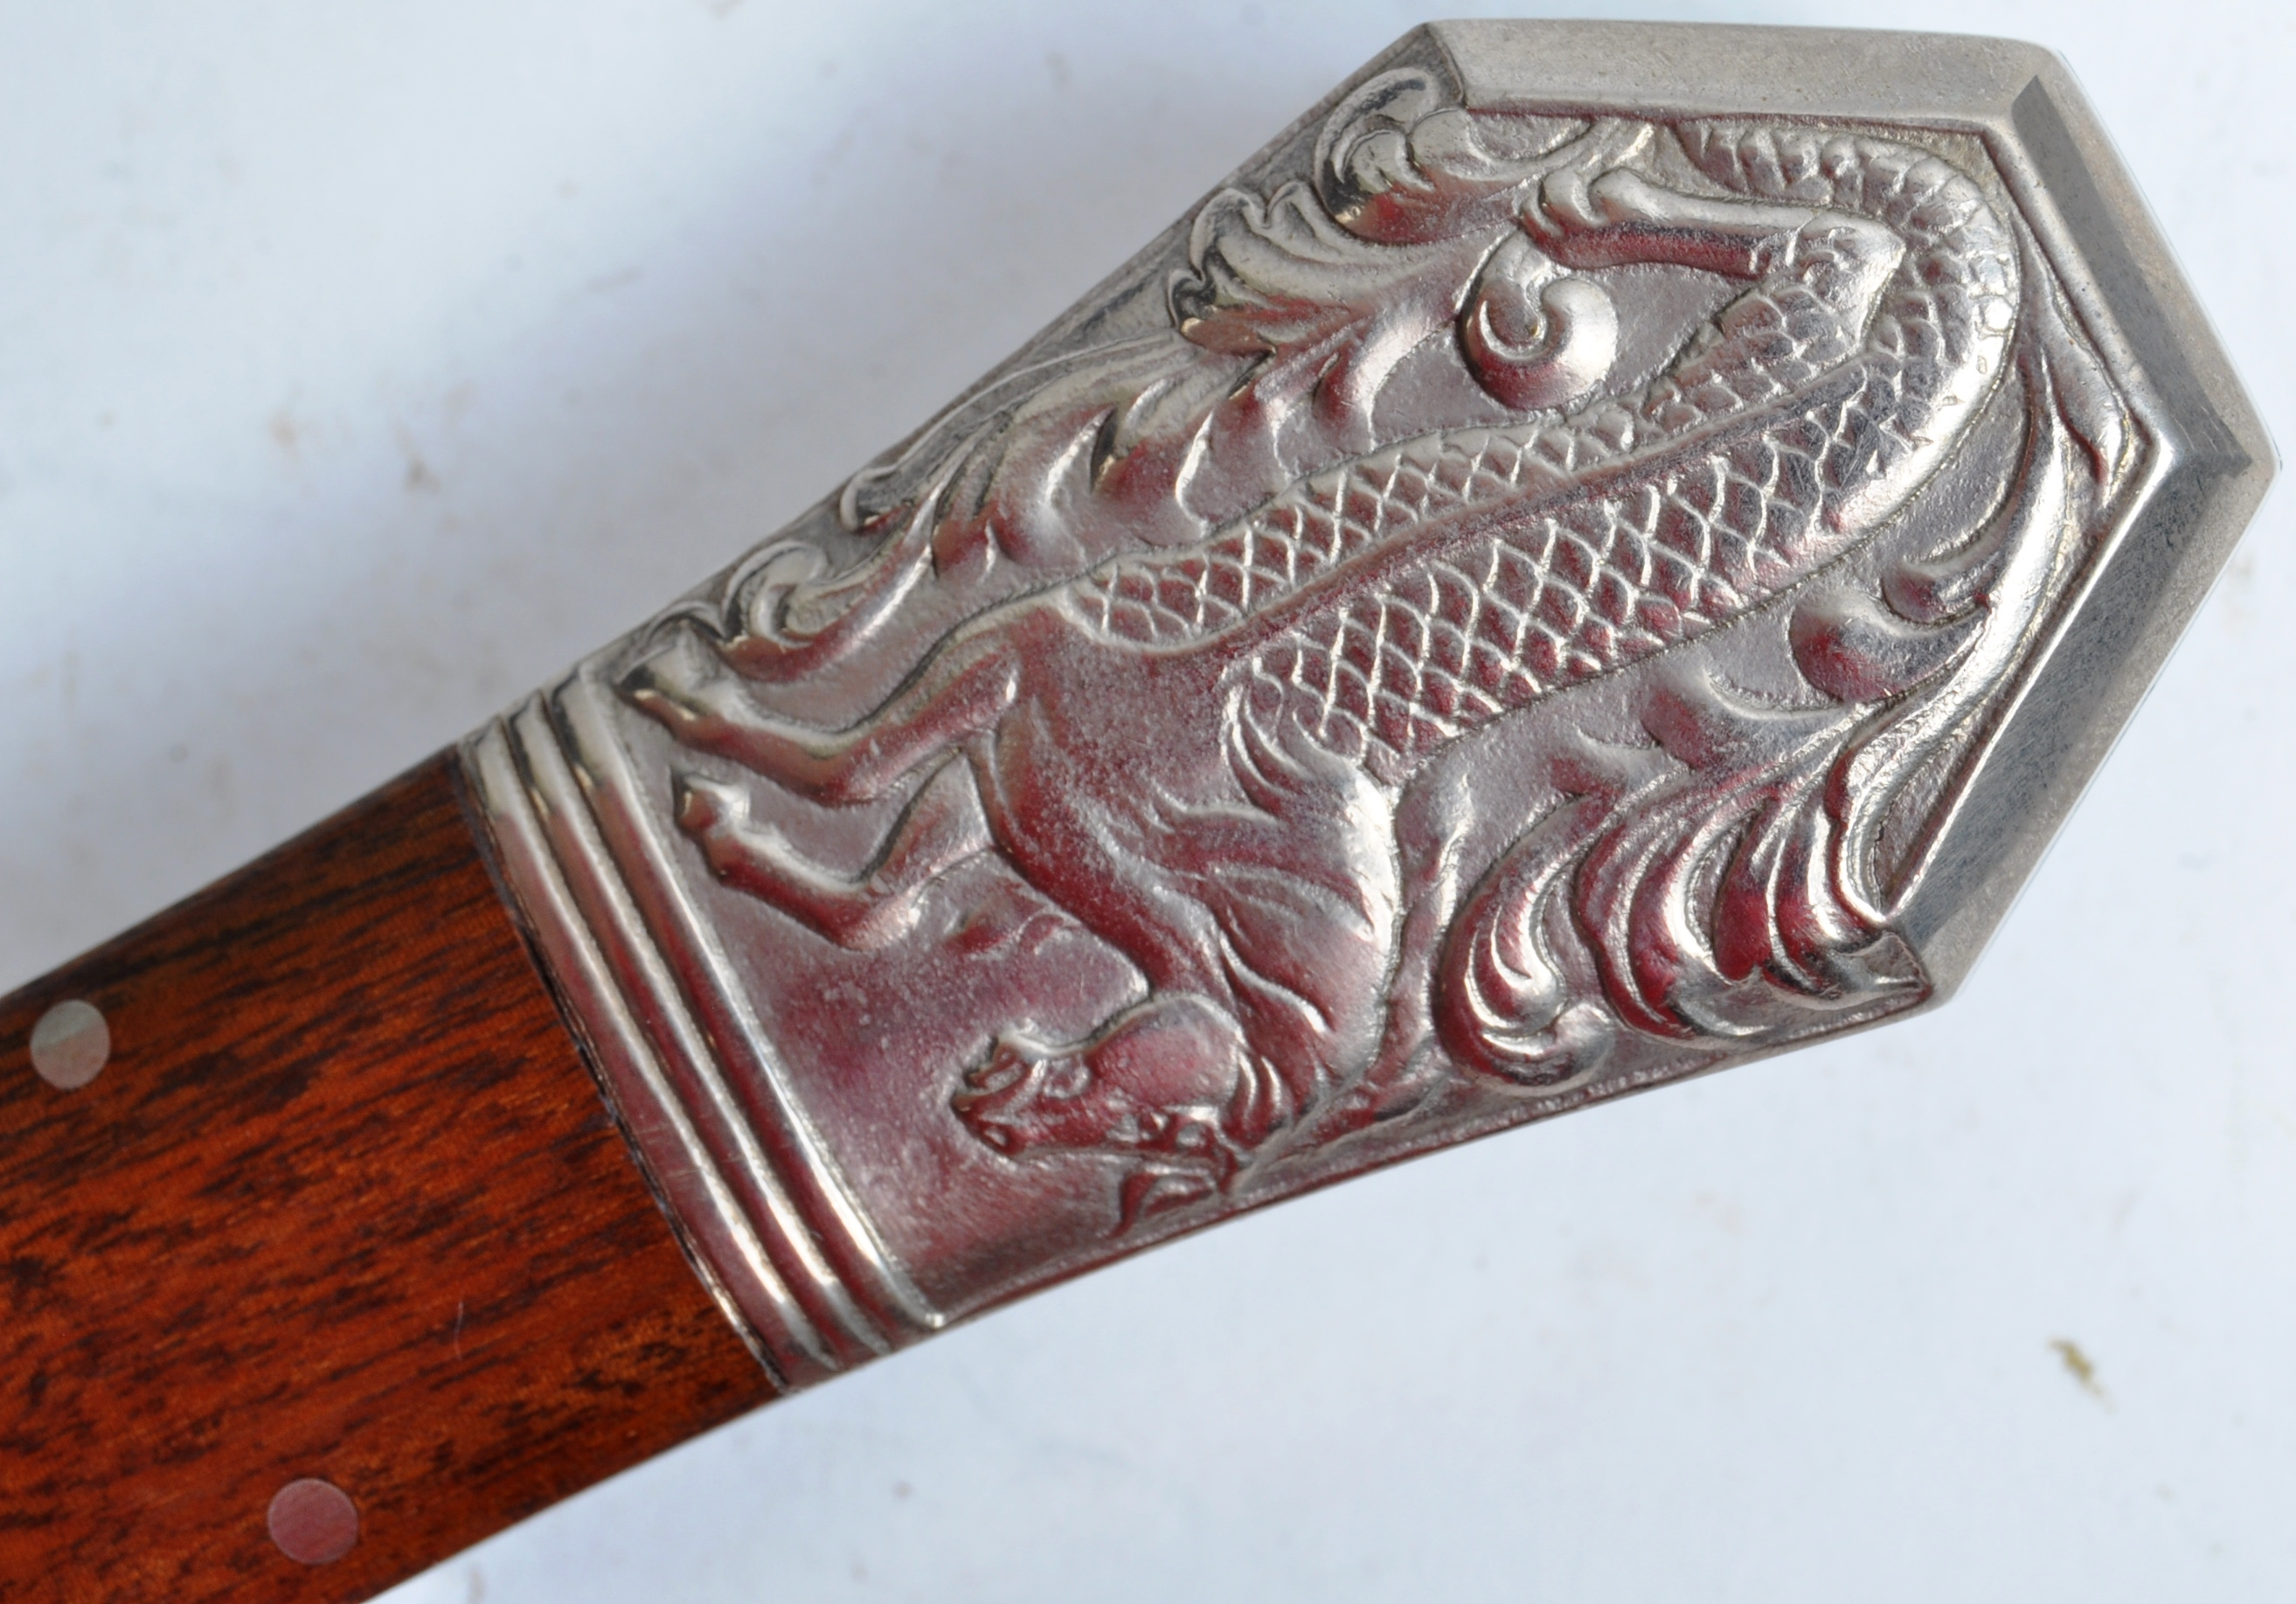 20TH CENTURY PAUL CHEN / HANWEI MADE BOWIE KNIFE - Image 10 of 12